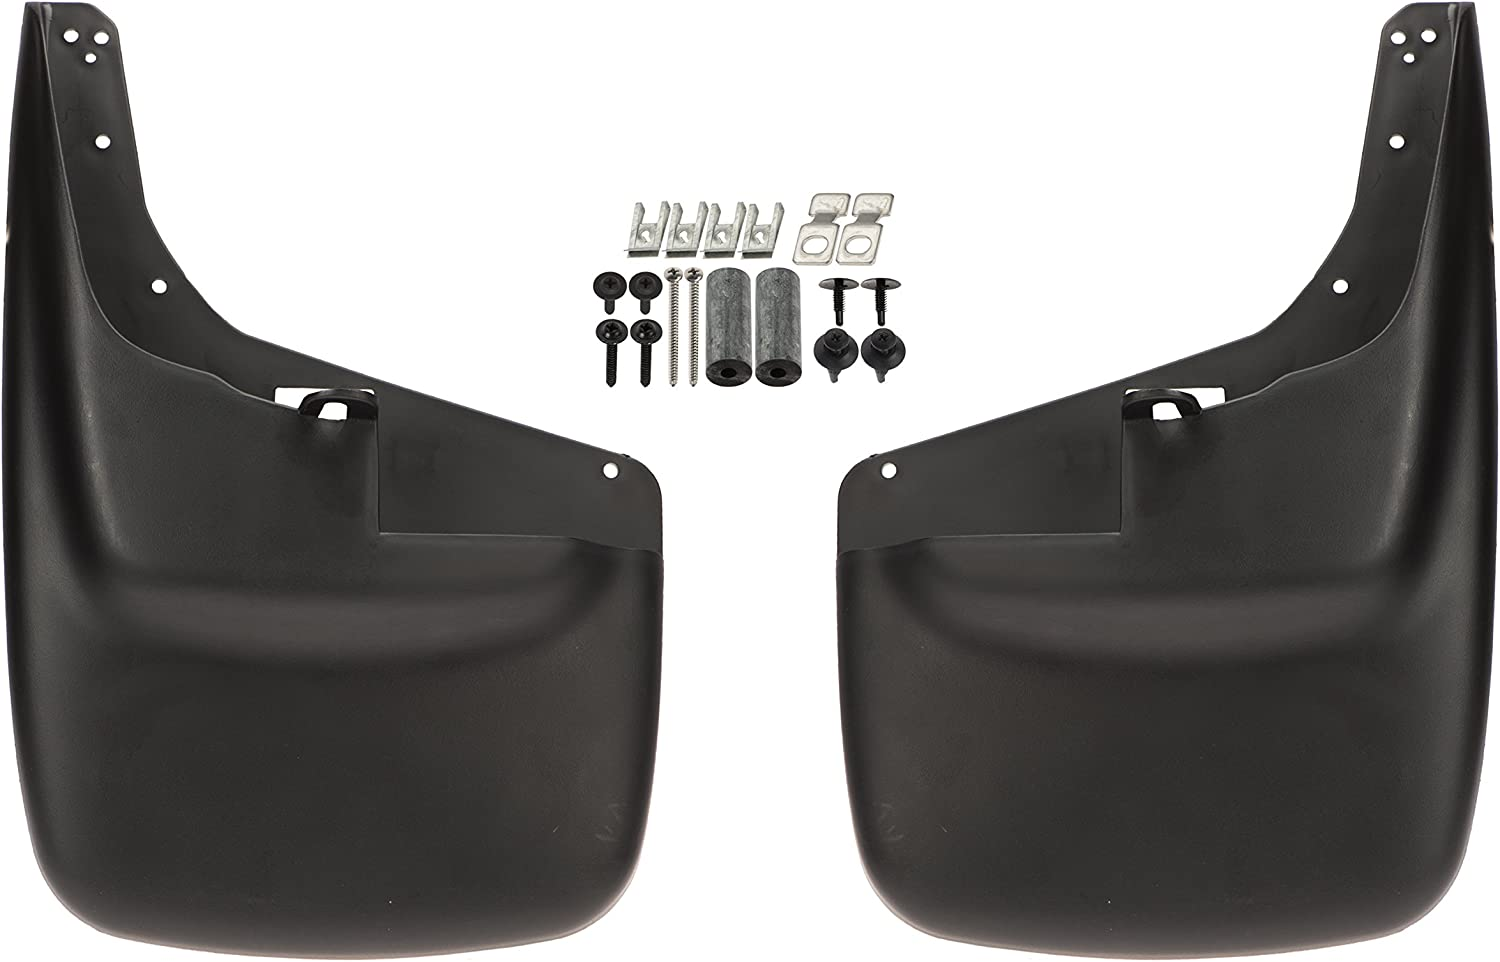 Genuine Ford 8C3Z-16A550-DB Mud Flap Kit